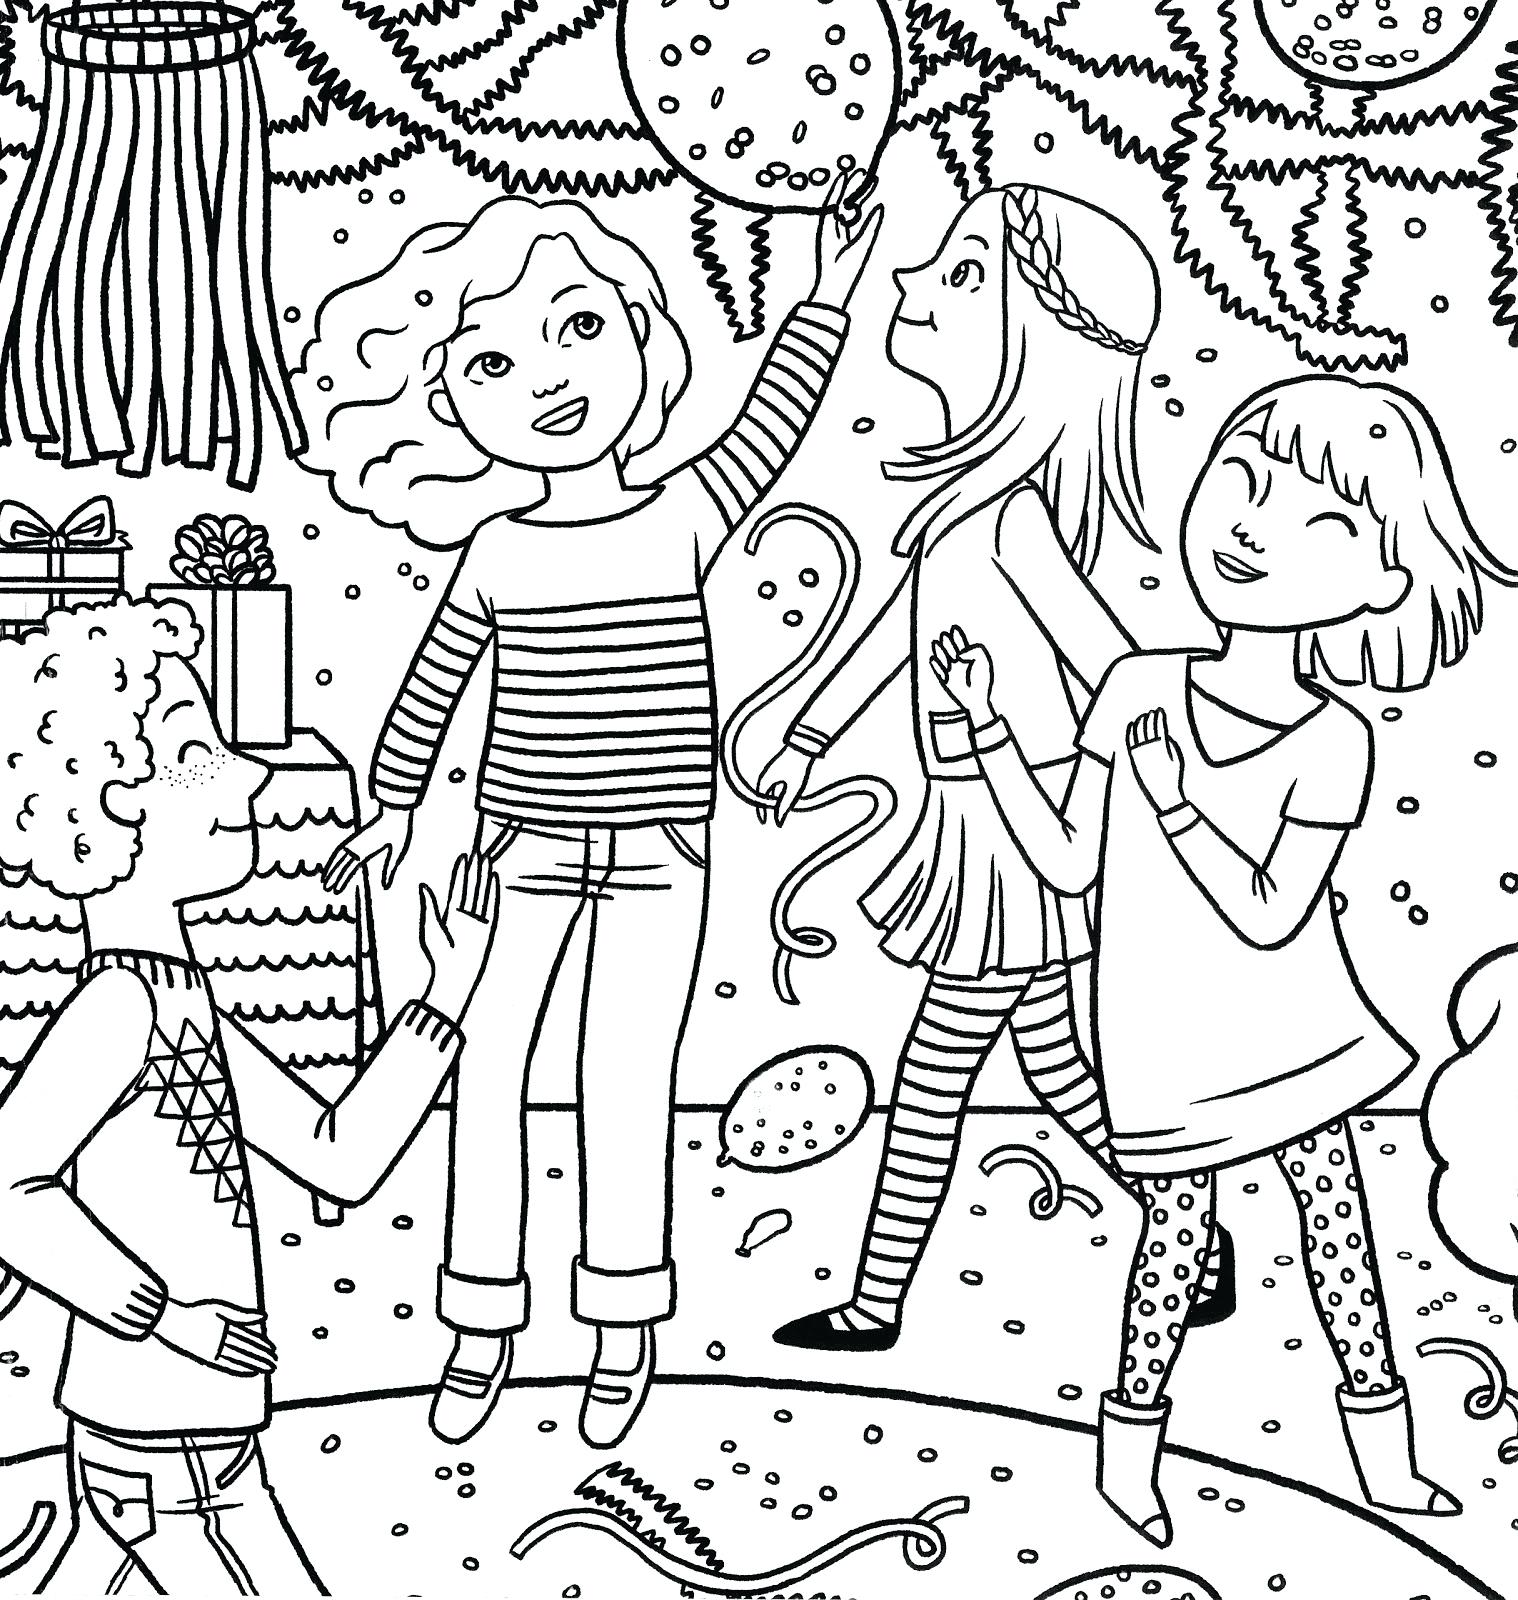 birthday party coloring ; birthday-party-coloring-pages-finds-girl-magazine-special-page-construction